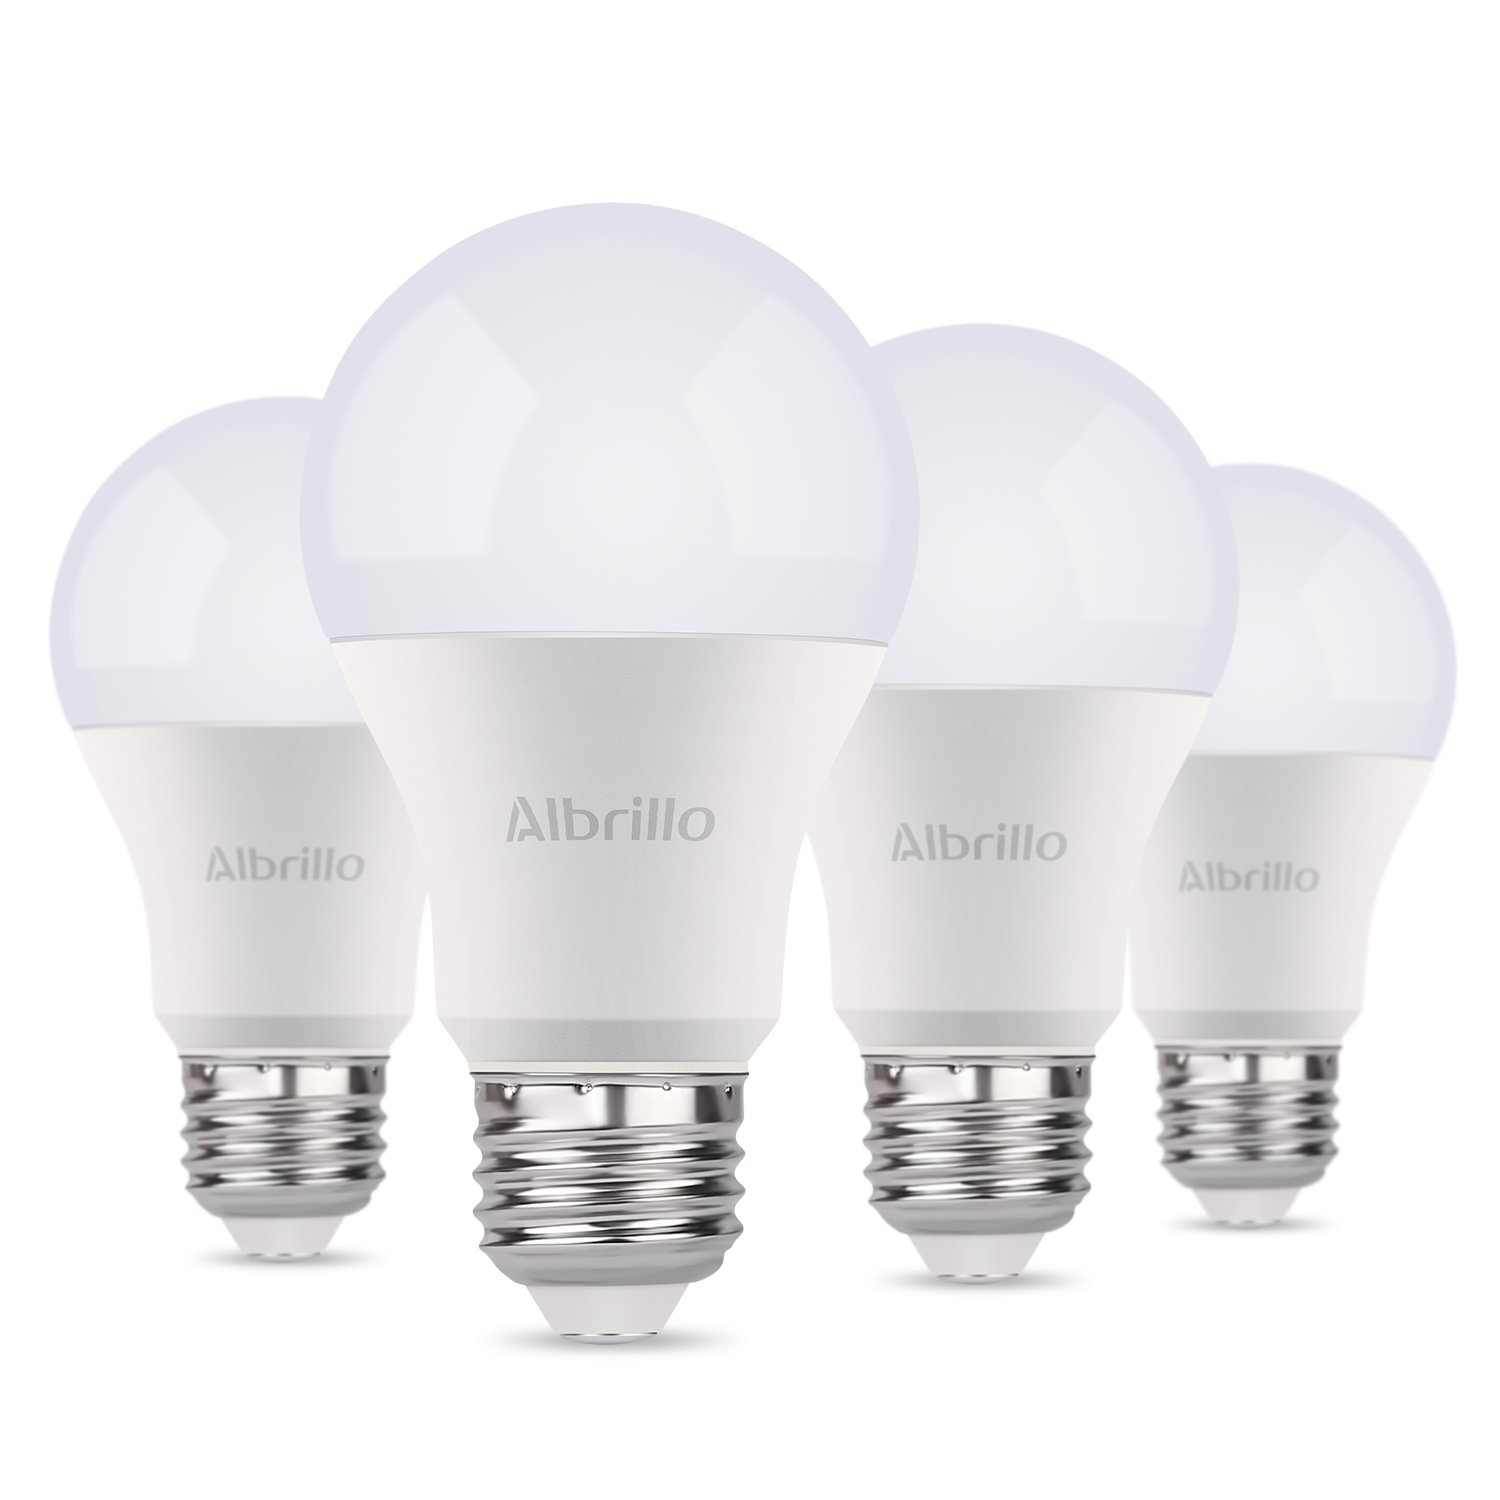 Albrillo A19 Light Bulb E26 LED Bulb 9W, 60 Watt Incandescent Light Bulbs Equivalent, Medium Base Light Bulb, 5000K Daylight White, Pack of 4